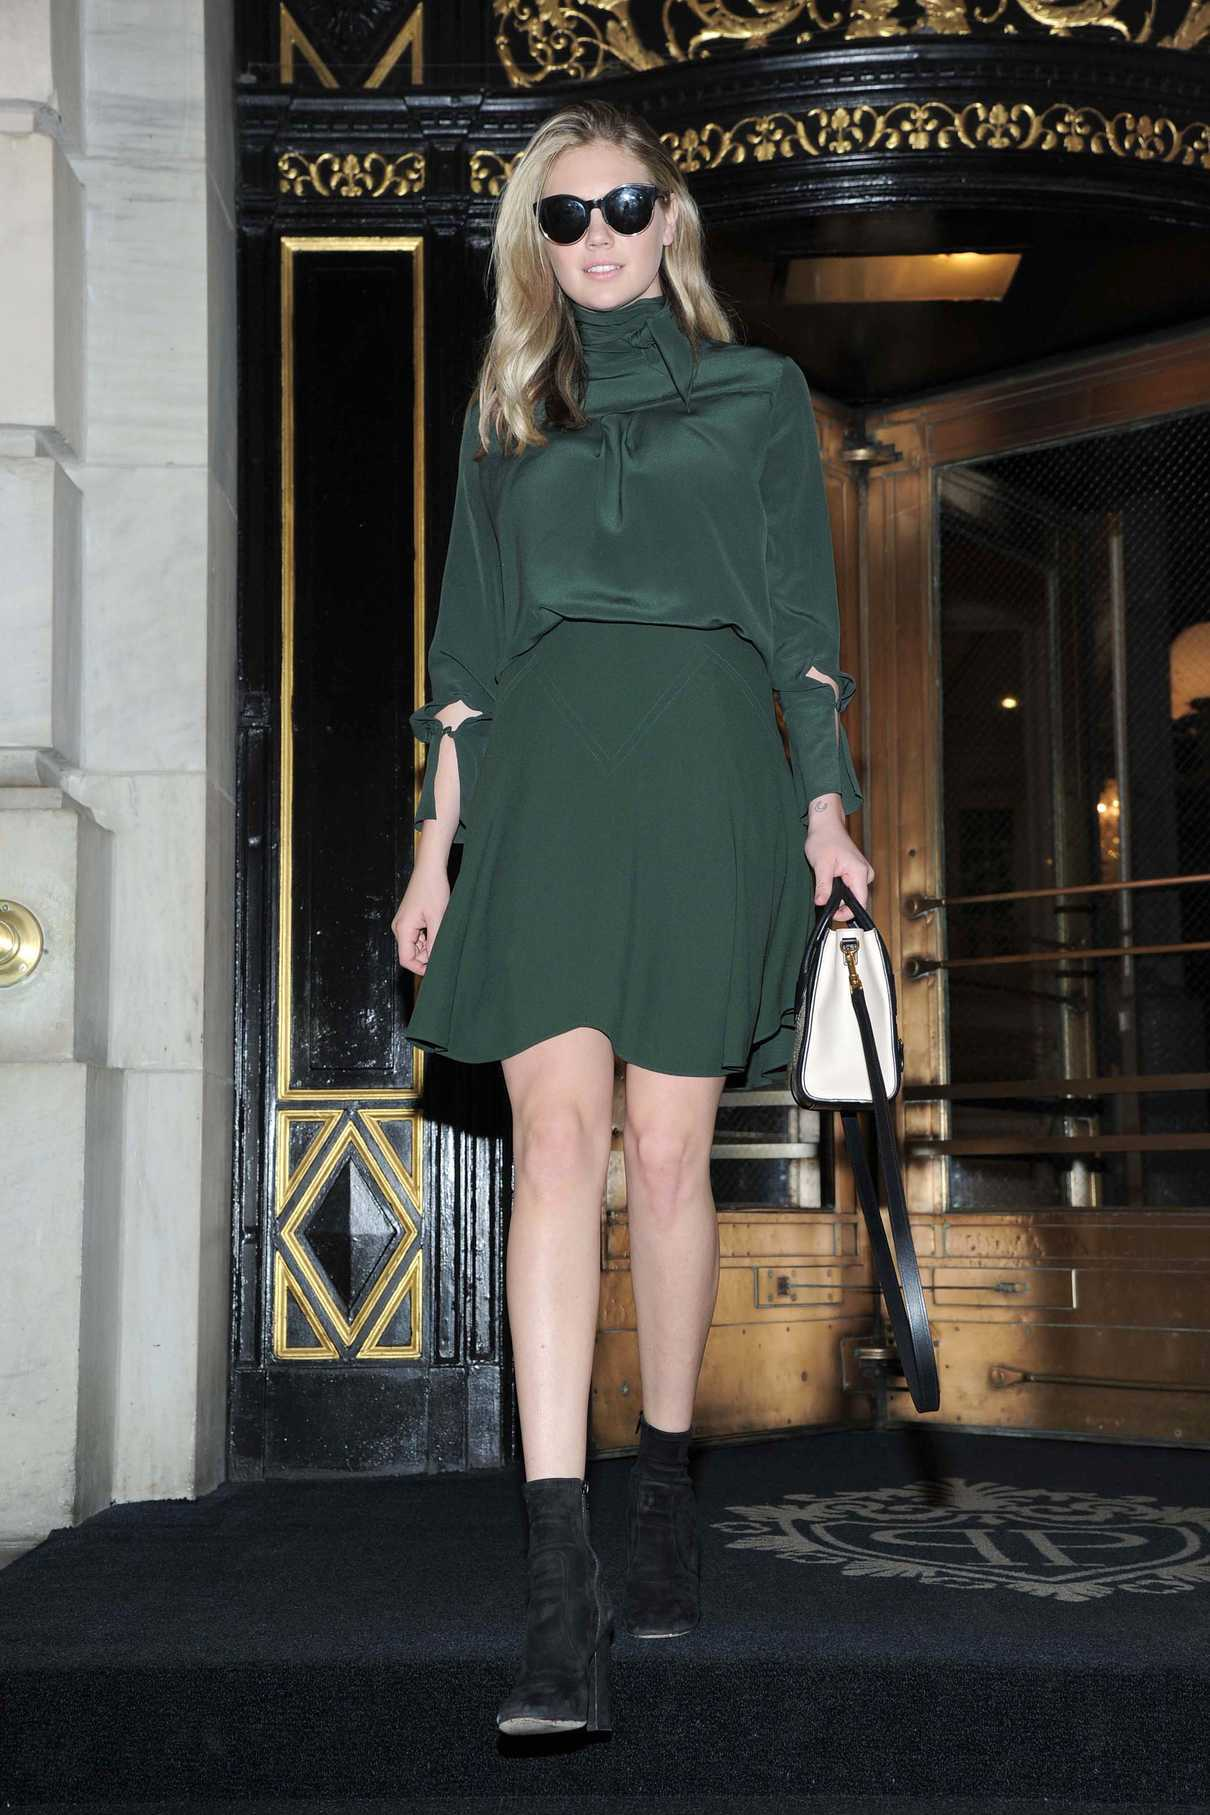 Kate Upton Leaves The Plaza Hotel In Nyc 10 23 2017 2 Lacelebs Co Photogallery of kate upton updates weekly. lacelebs co